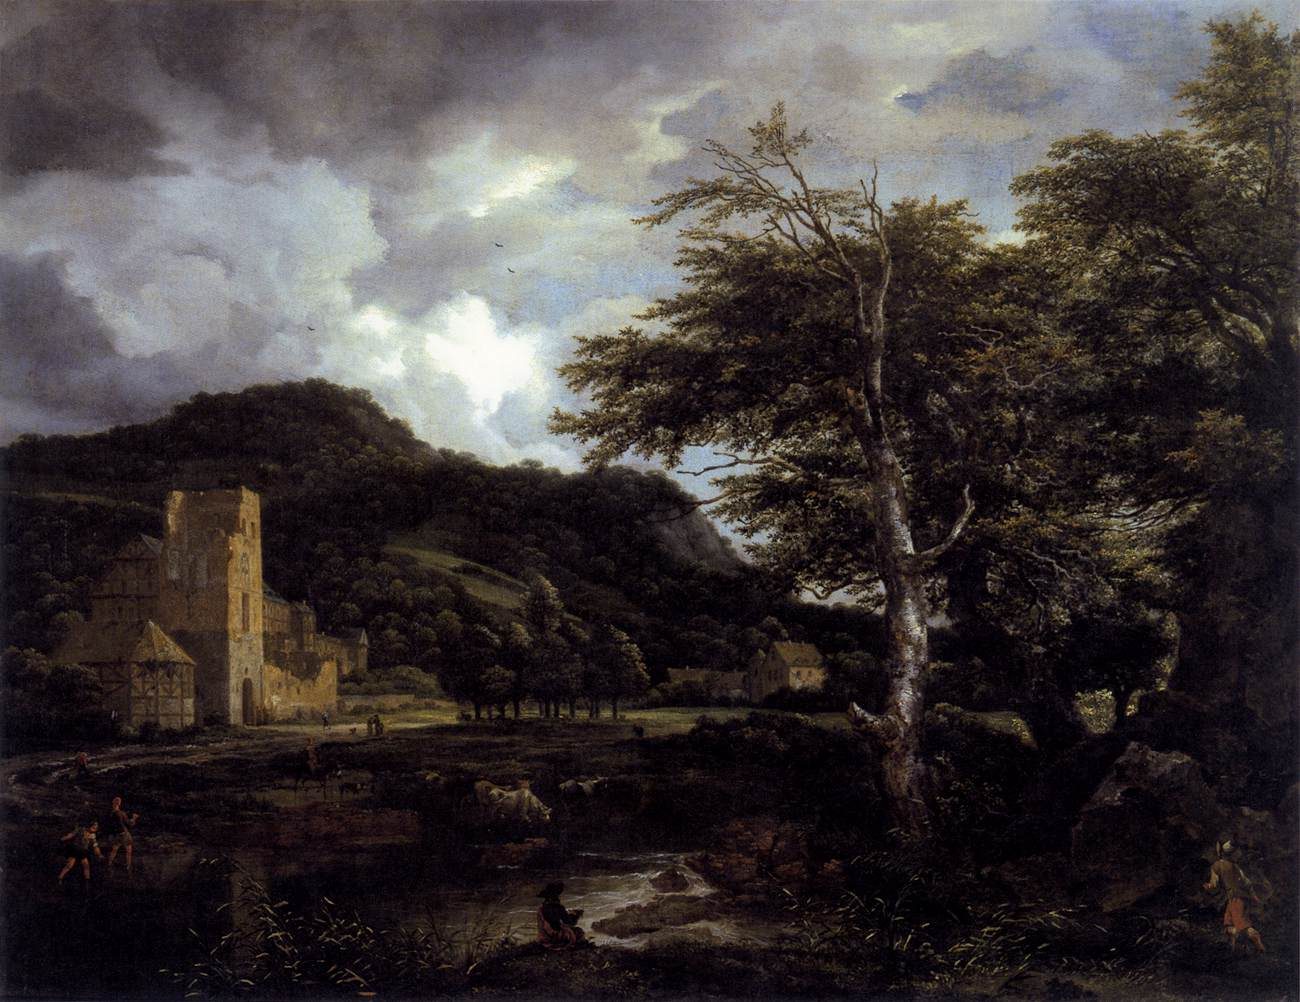 Jacob Isaacksz. van Ruisdael (1628/1629–1682) [Public domain], via Wikimedia Commons